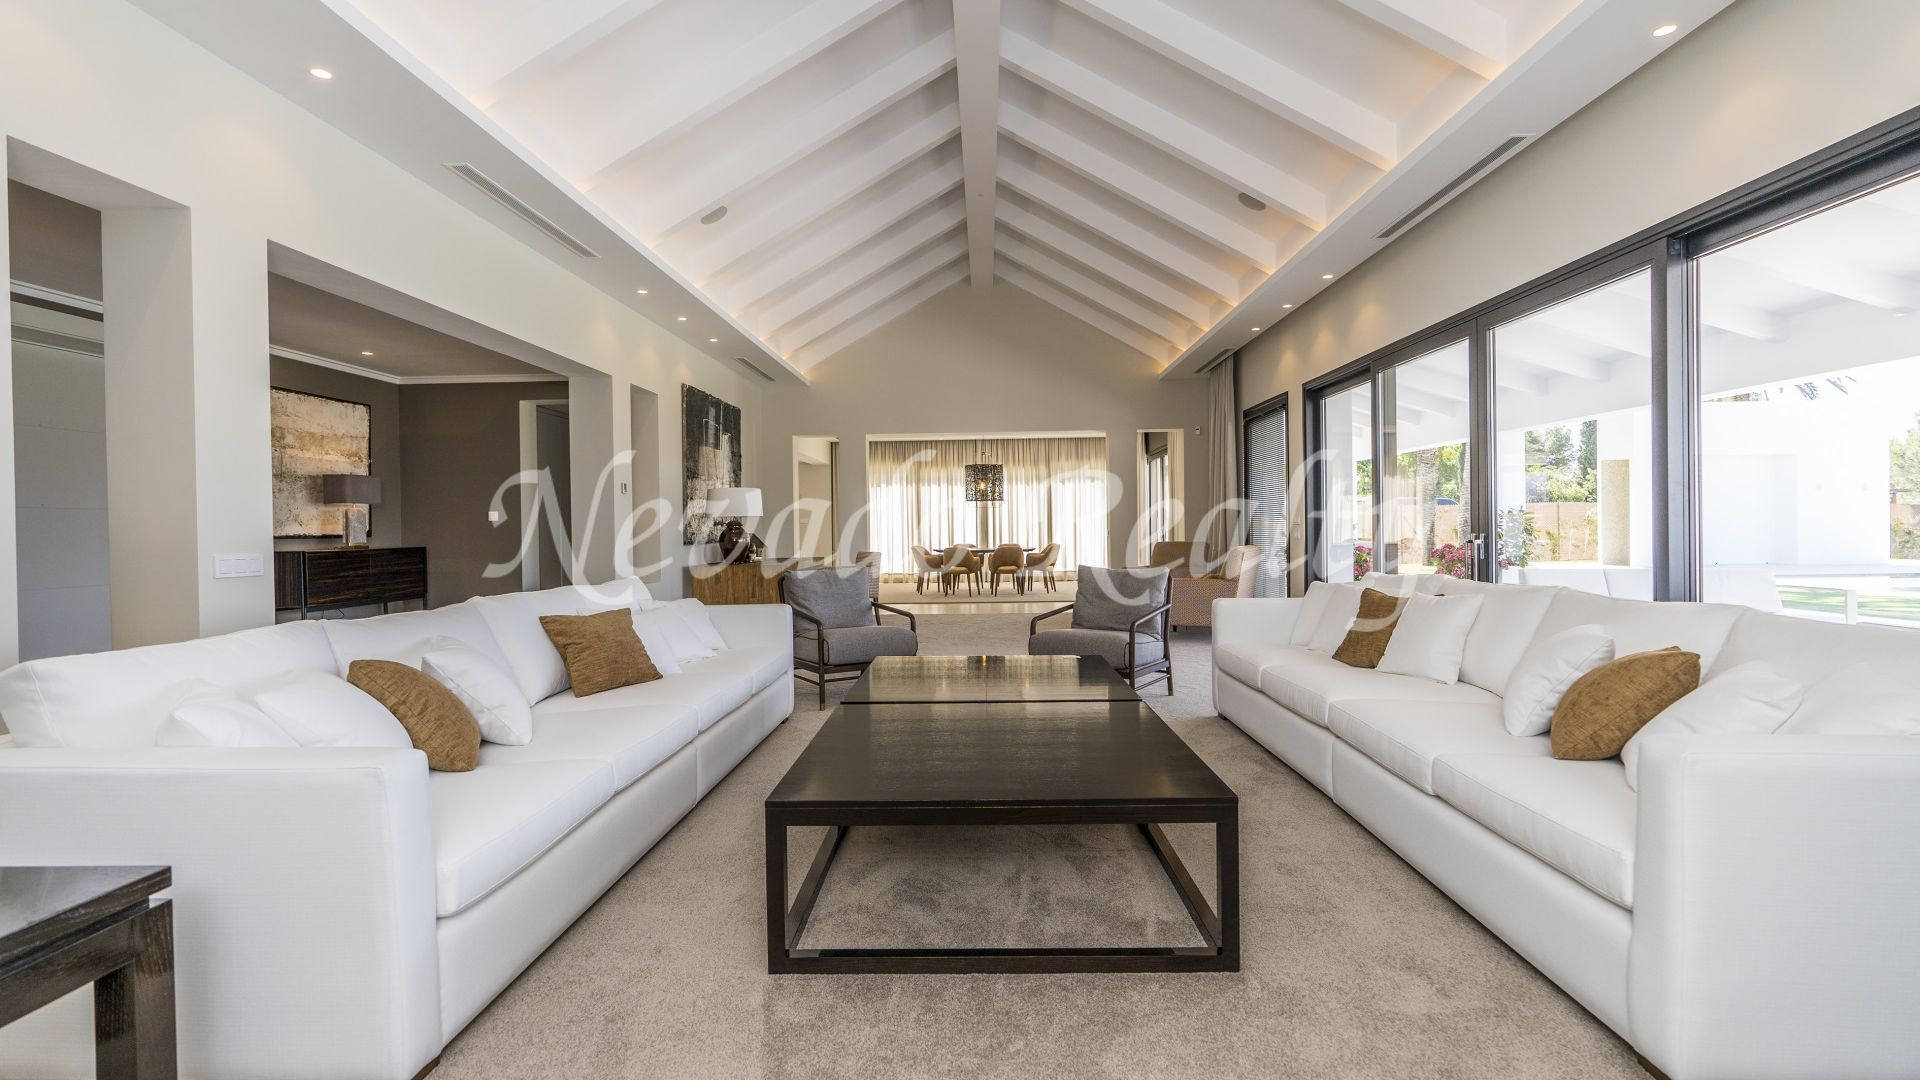 Built on one floor modern style villa on large plot with sea views for sale in Sierra Blanca